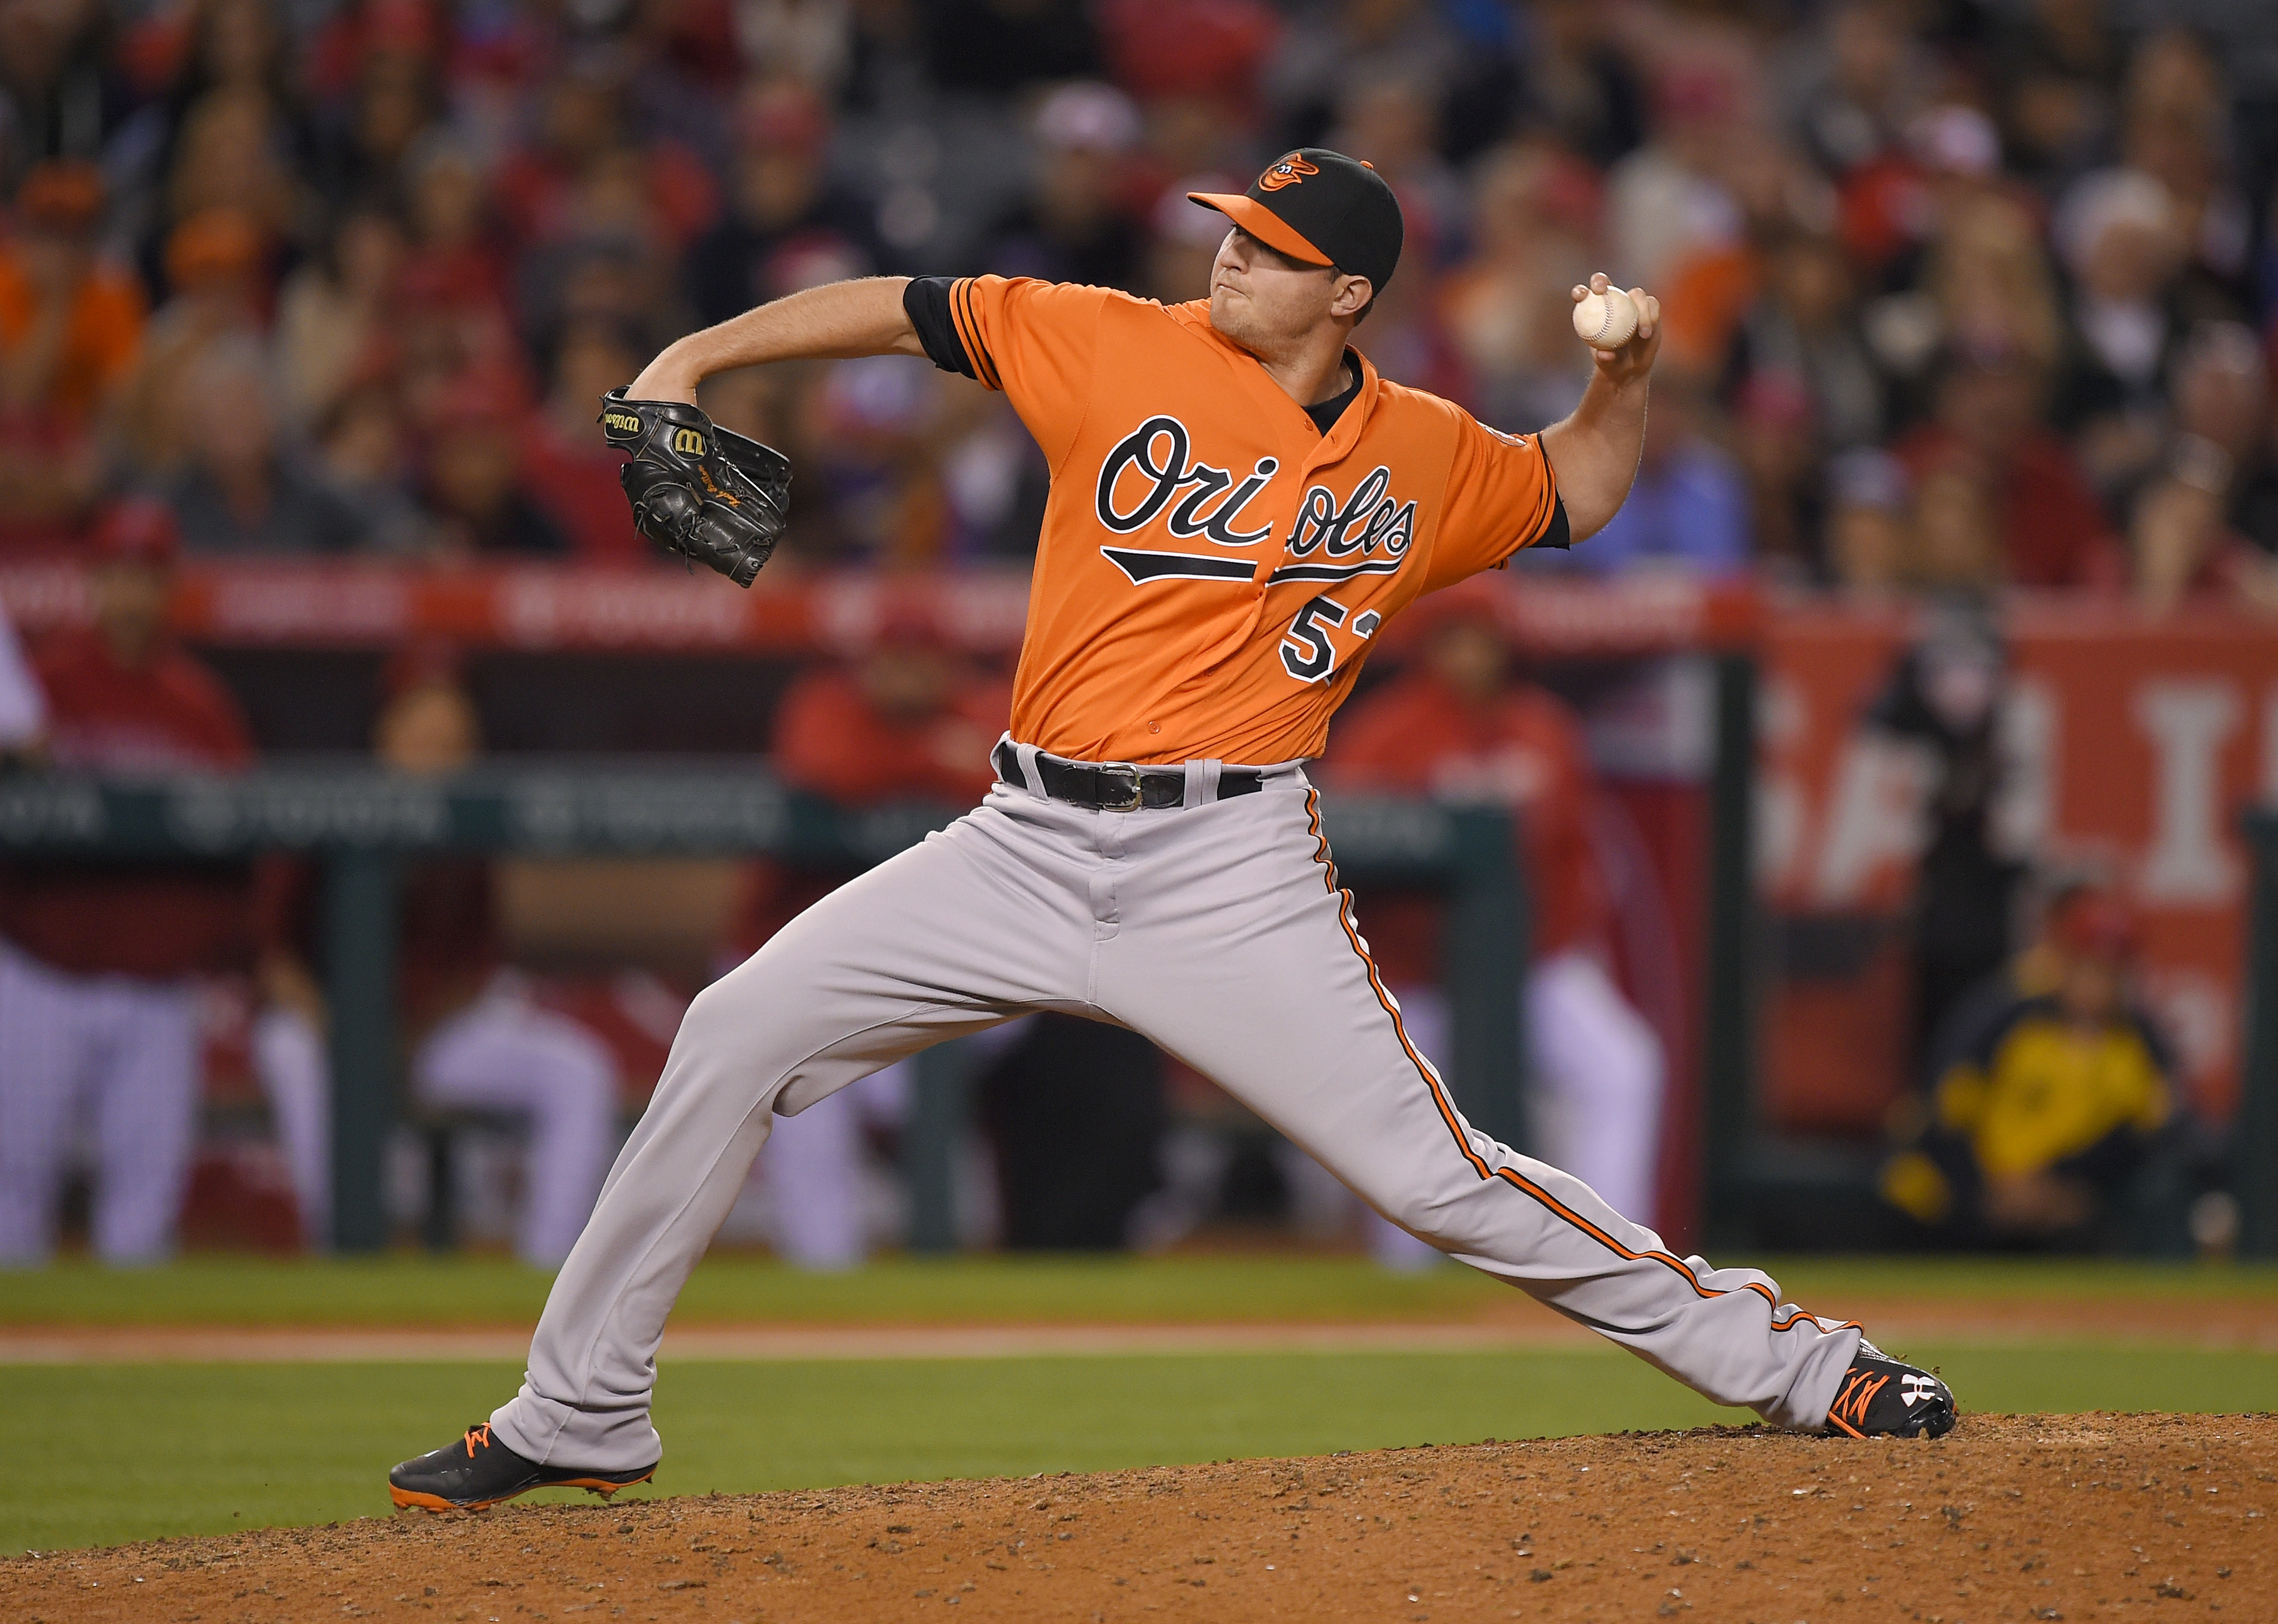 Baltimore Orioles relief pitcher Zach Britton throws during the ninth inning of a baseball game against the Los Angeles Angels, Saturday, May 21, 2016, in Anaheim, Calif. The Orioles won 3-1. (AP Photo/Mark J. Terrill)